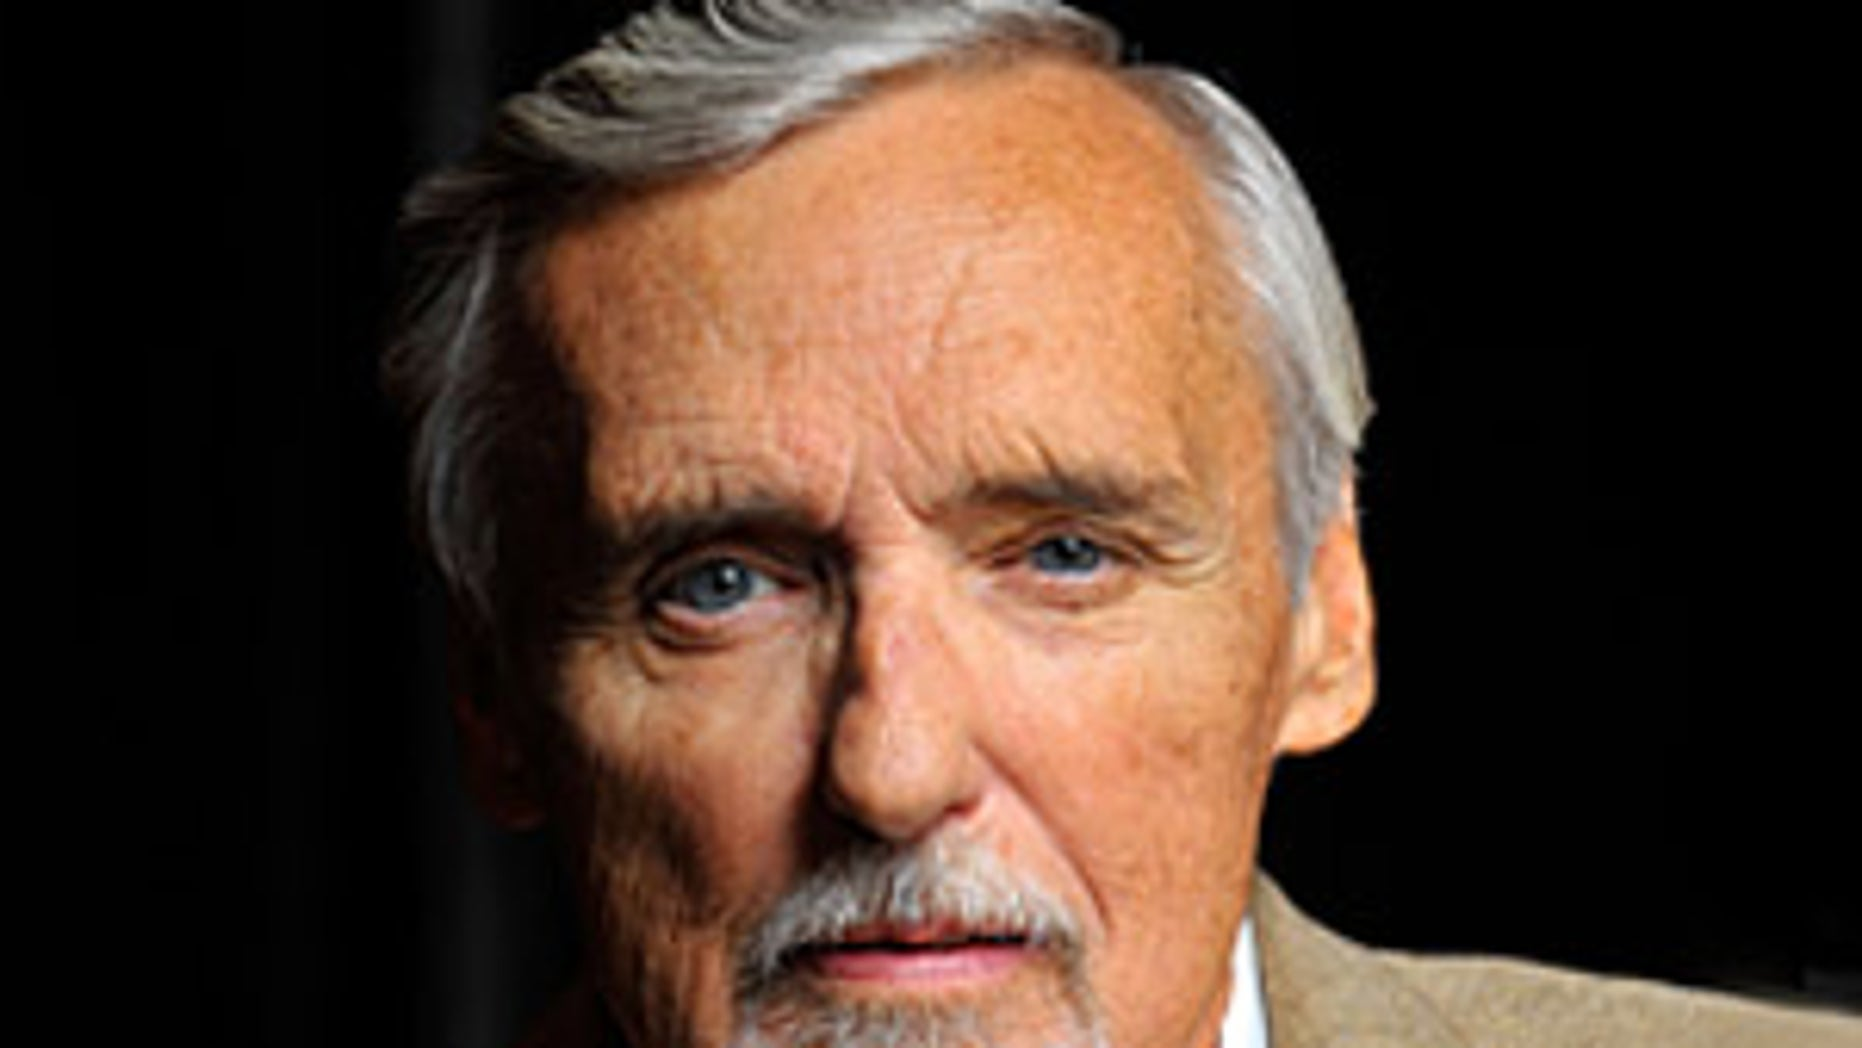 LAS VEGAS - JUNE 14:  Actor and chair of the CineVegas creative advisory board Dennis Hopper poses for a portrait during the 11th annual CineVegas film festival held at the Palms Casino Resort on June 14, 2009 in Las Vegas, Nevada.  (Photo by Charley Gallay/Getty Images for CineVegas) *** Local Caption *** Dennis Hopper